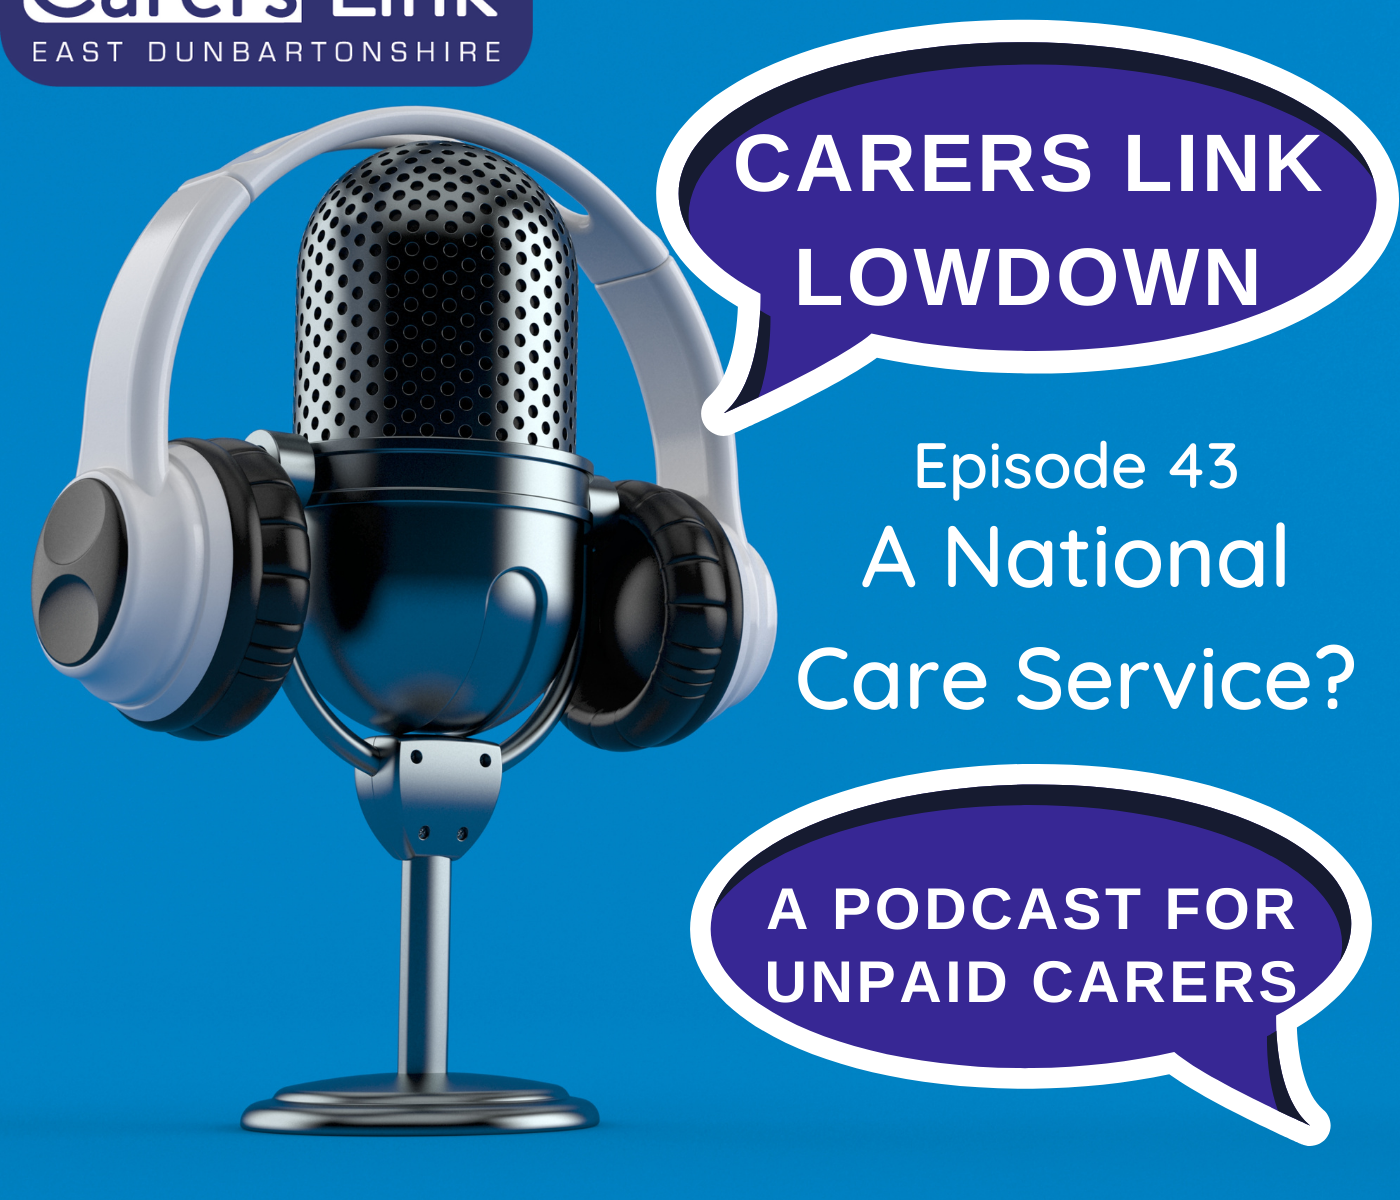 Carers Link Lowdown Episode 43 A National Care Service?